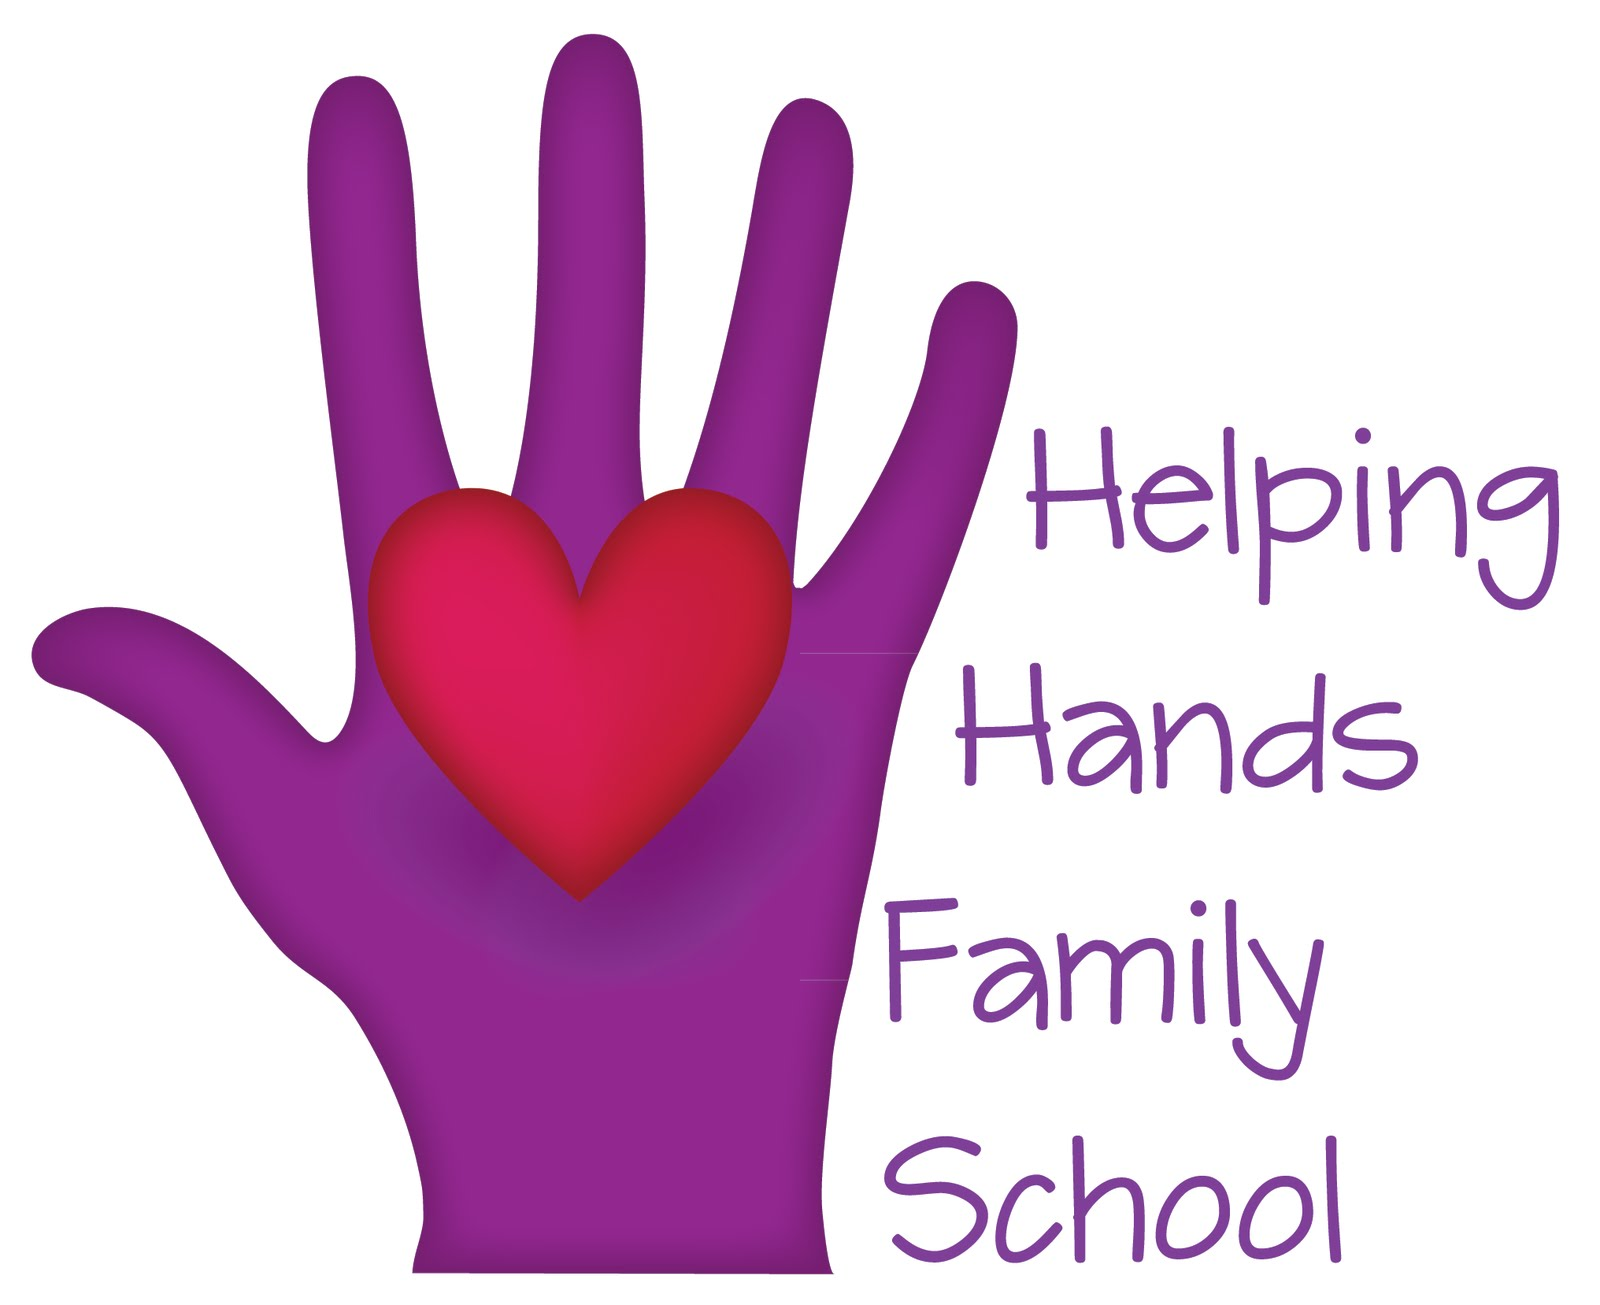 Helping Hands Family School What Do We Do All Day